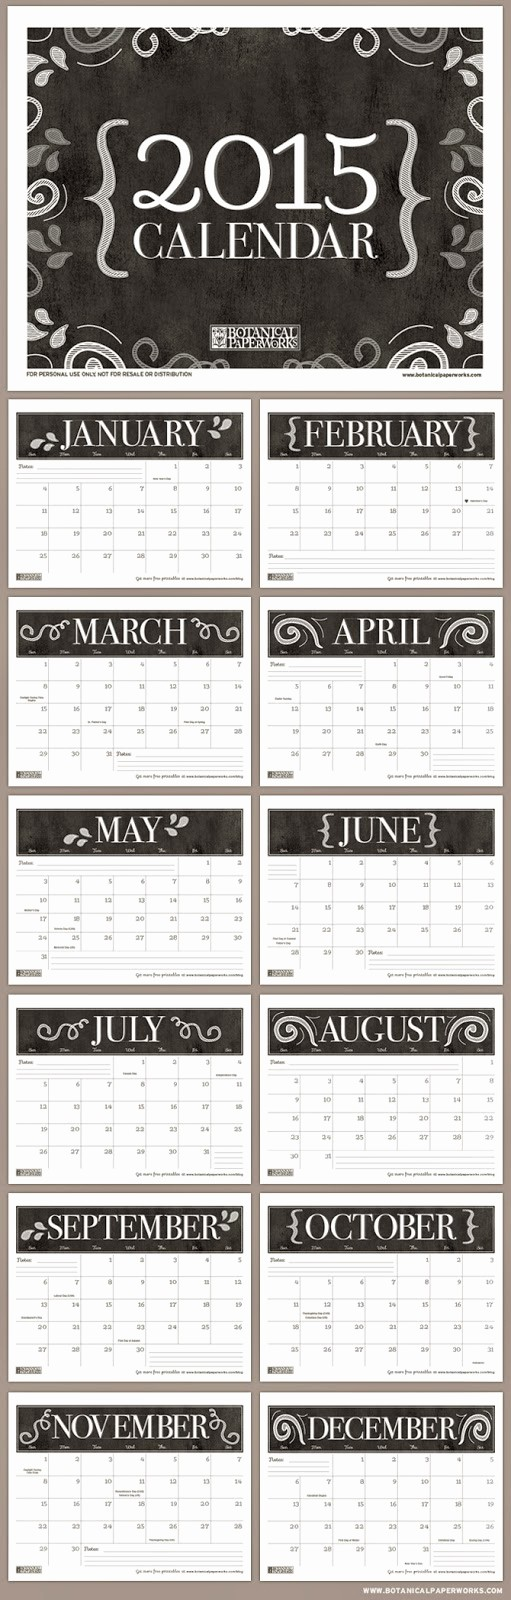 Printable 3 Month Calendar 2015 Inspirational Free Printable 2015 Monthly Calendar